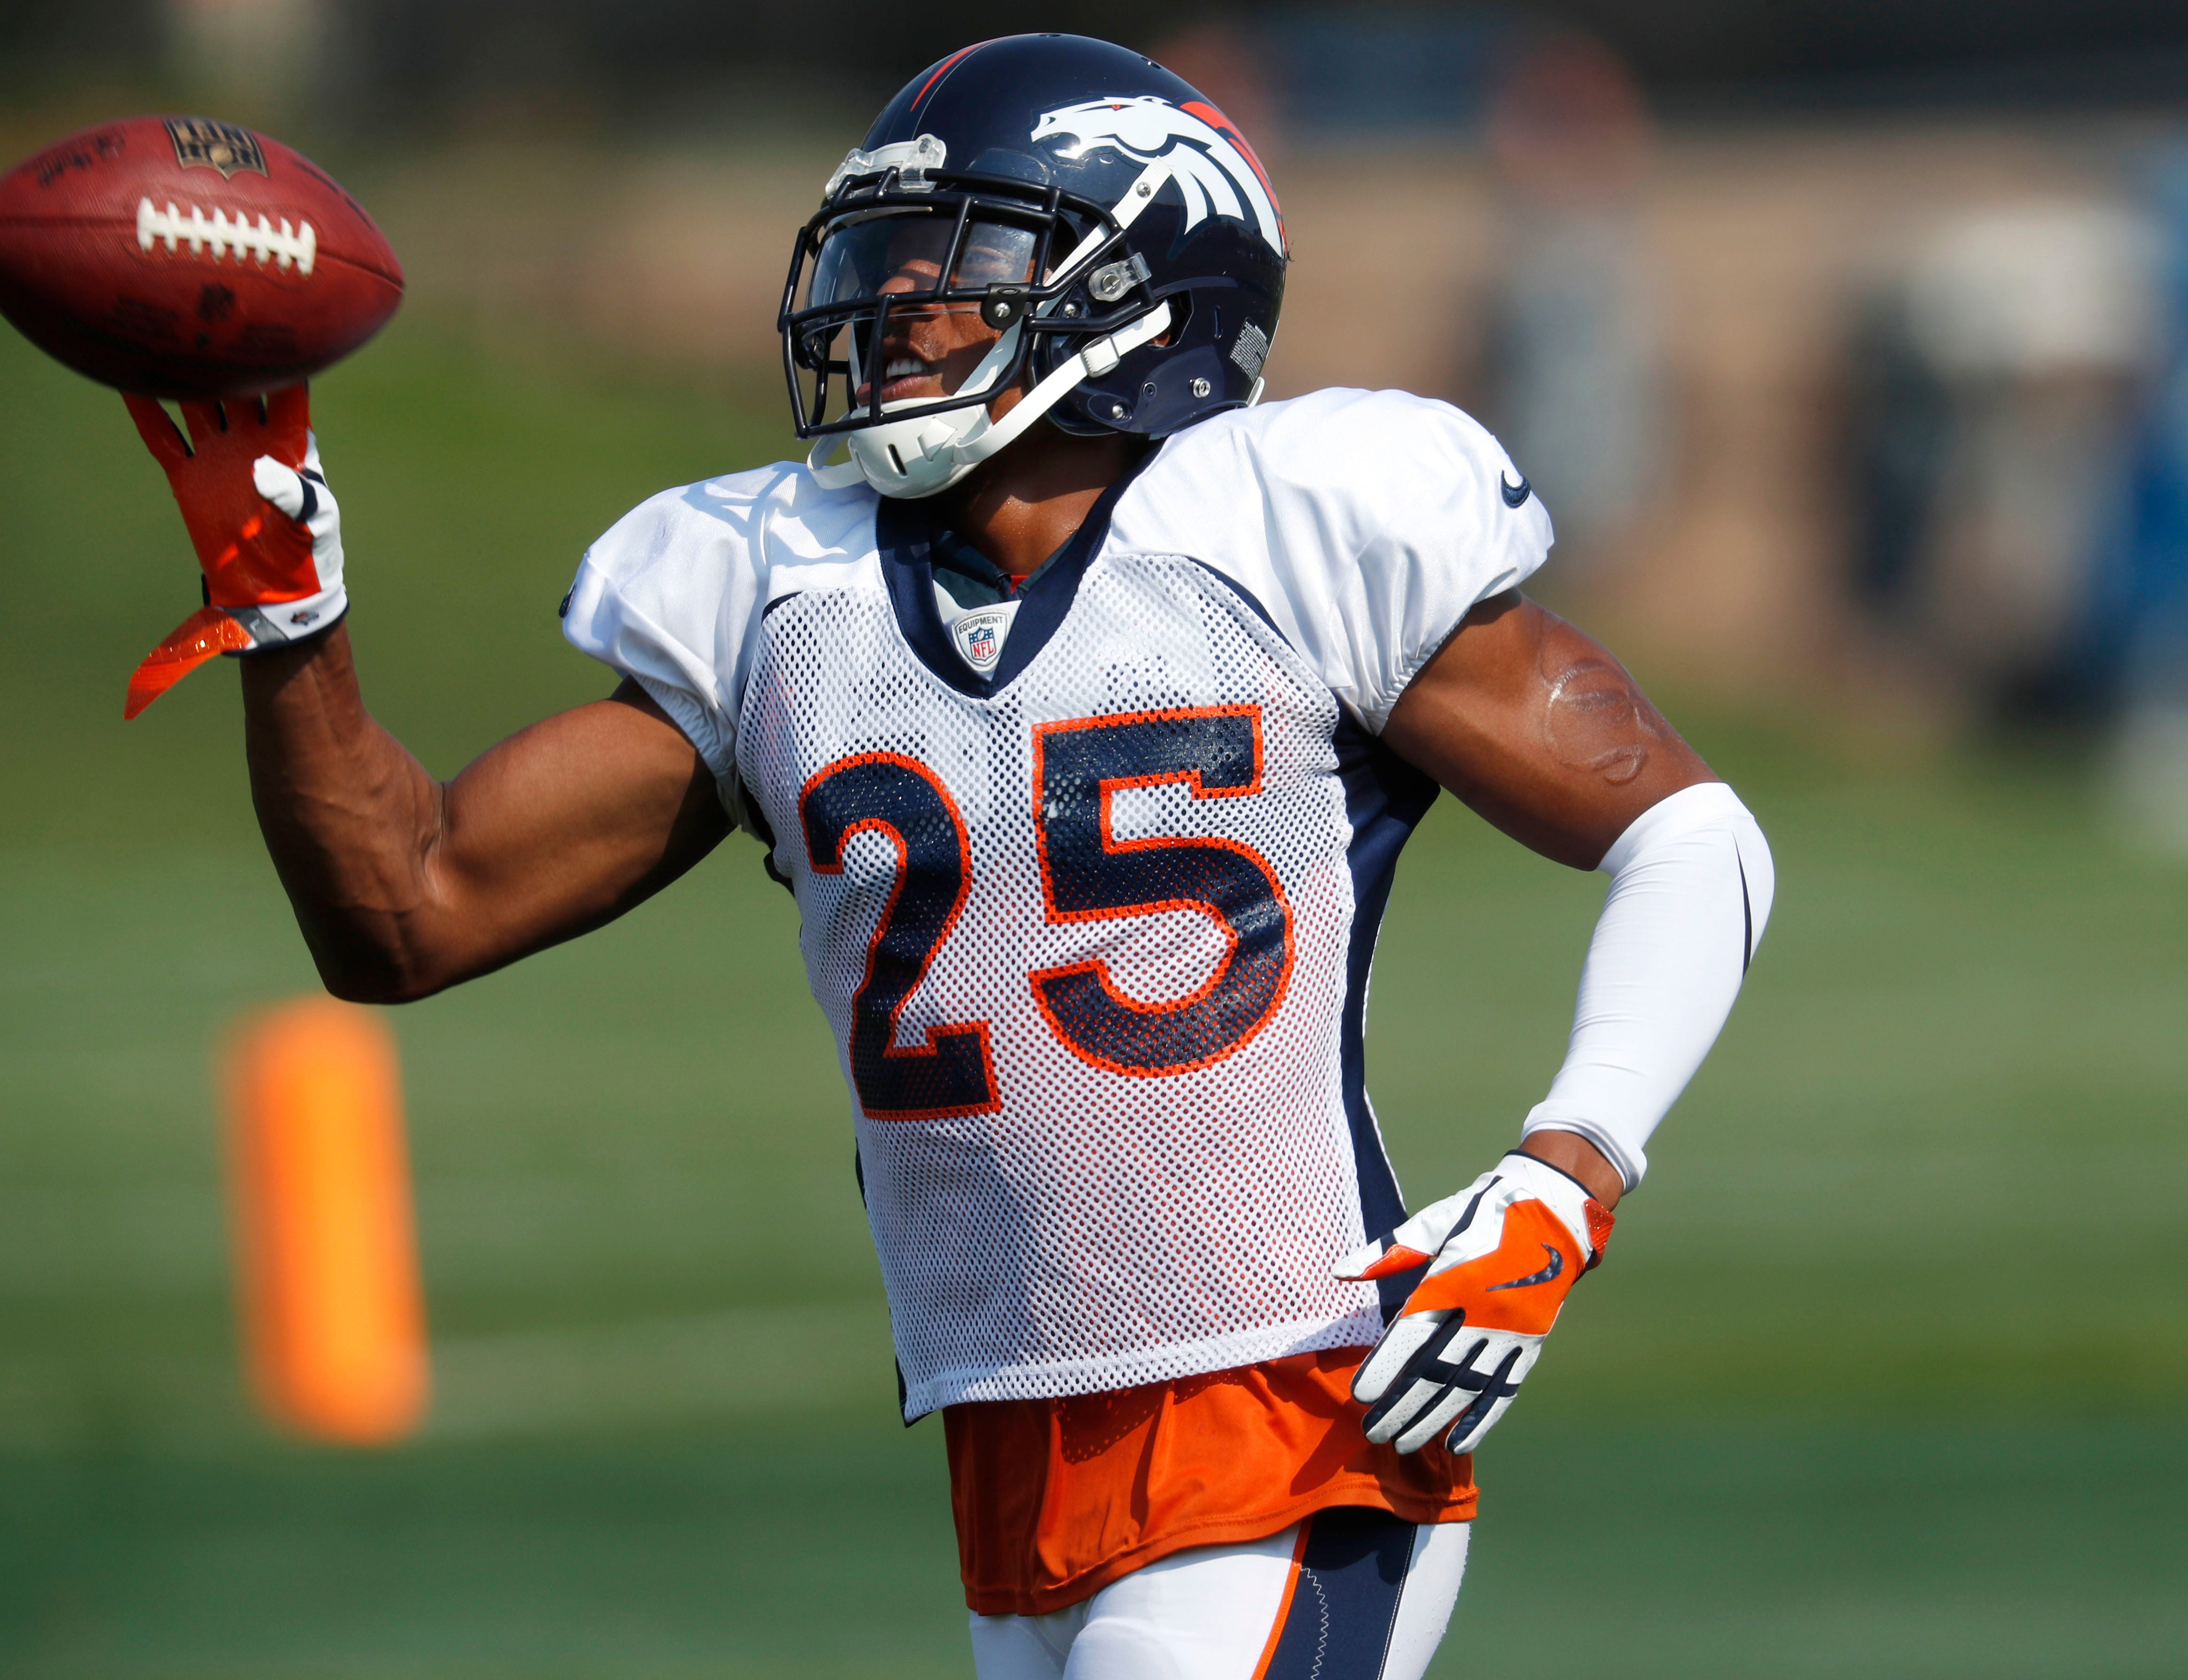 Harris returns to Broncos, ready to prove his worth